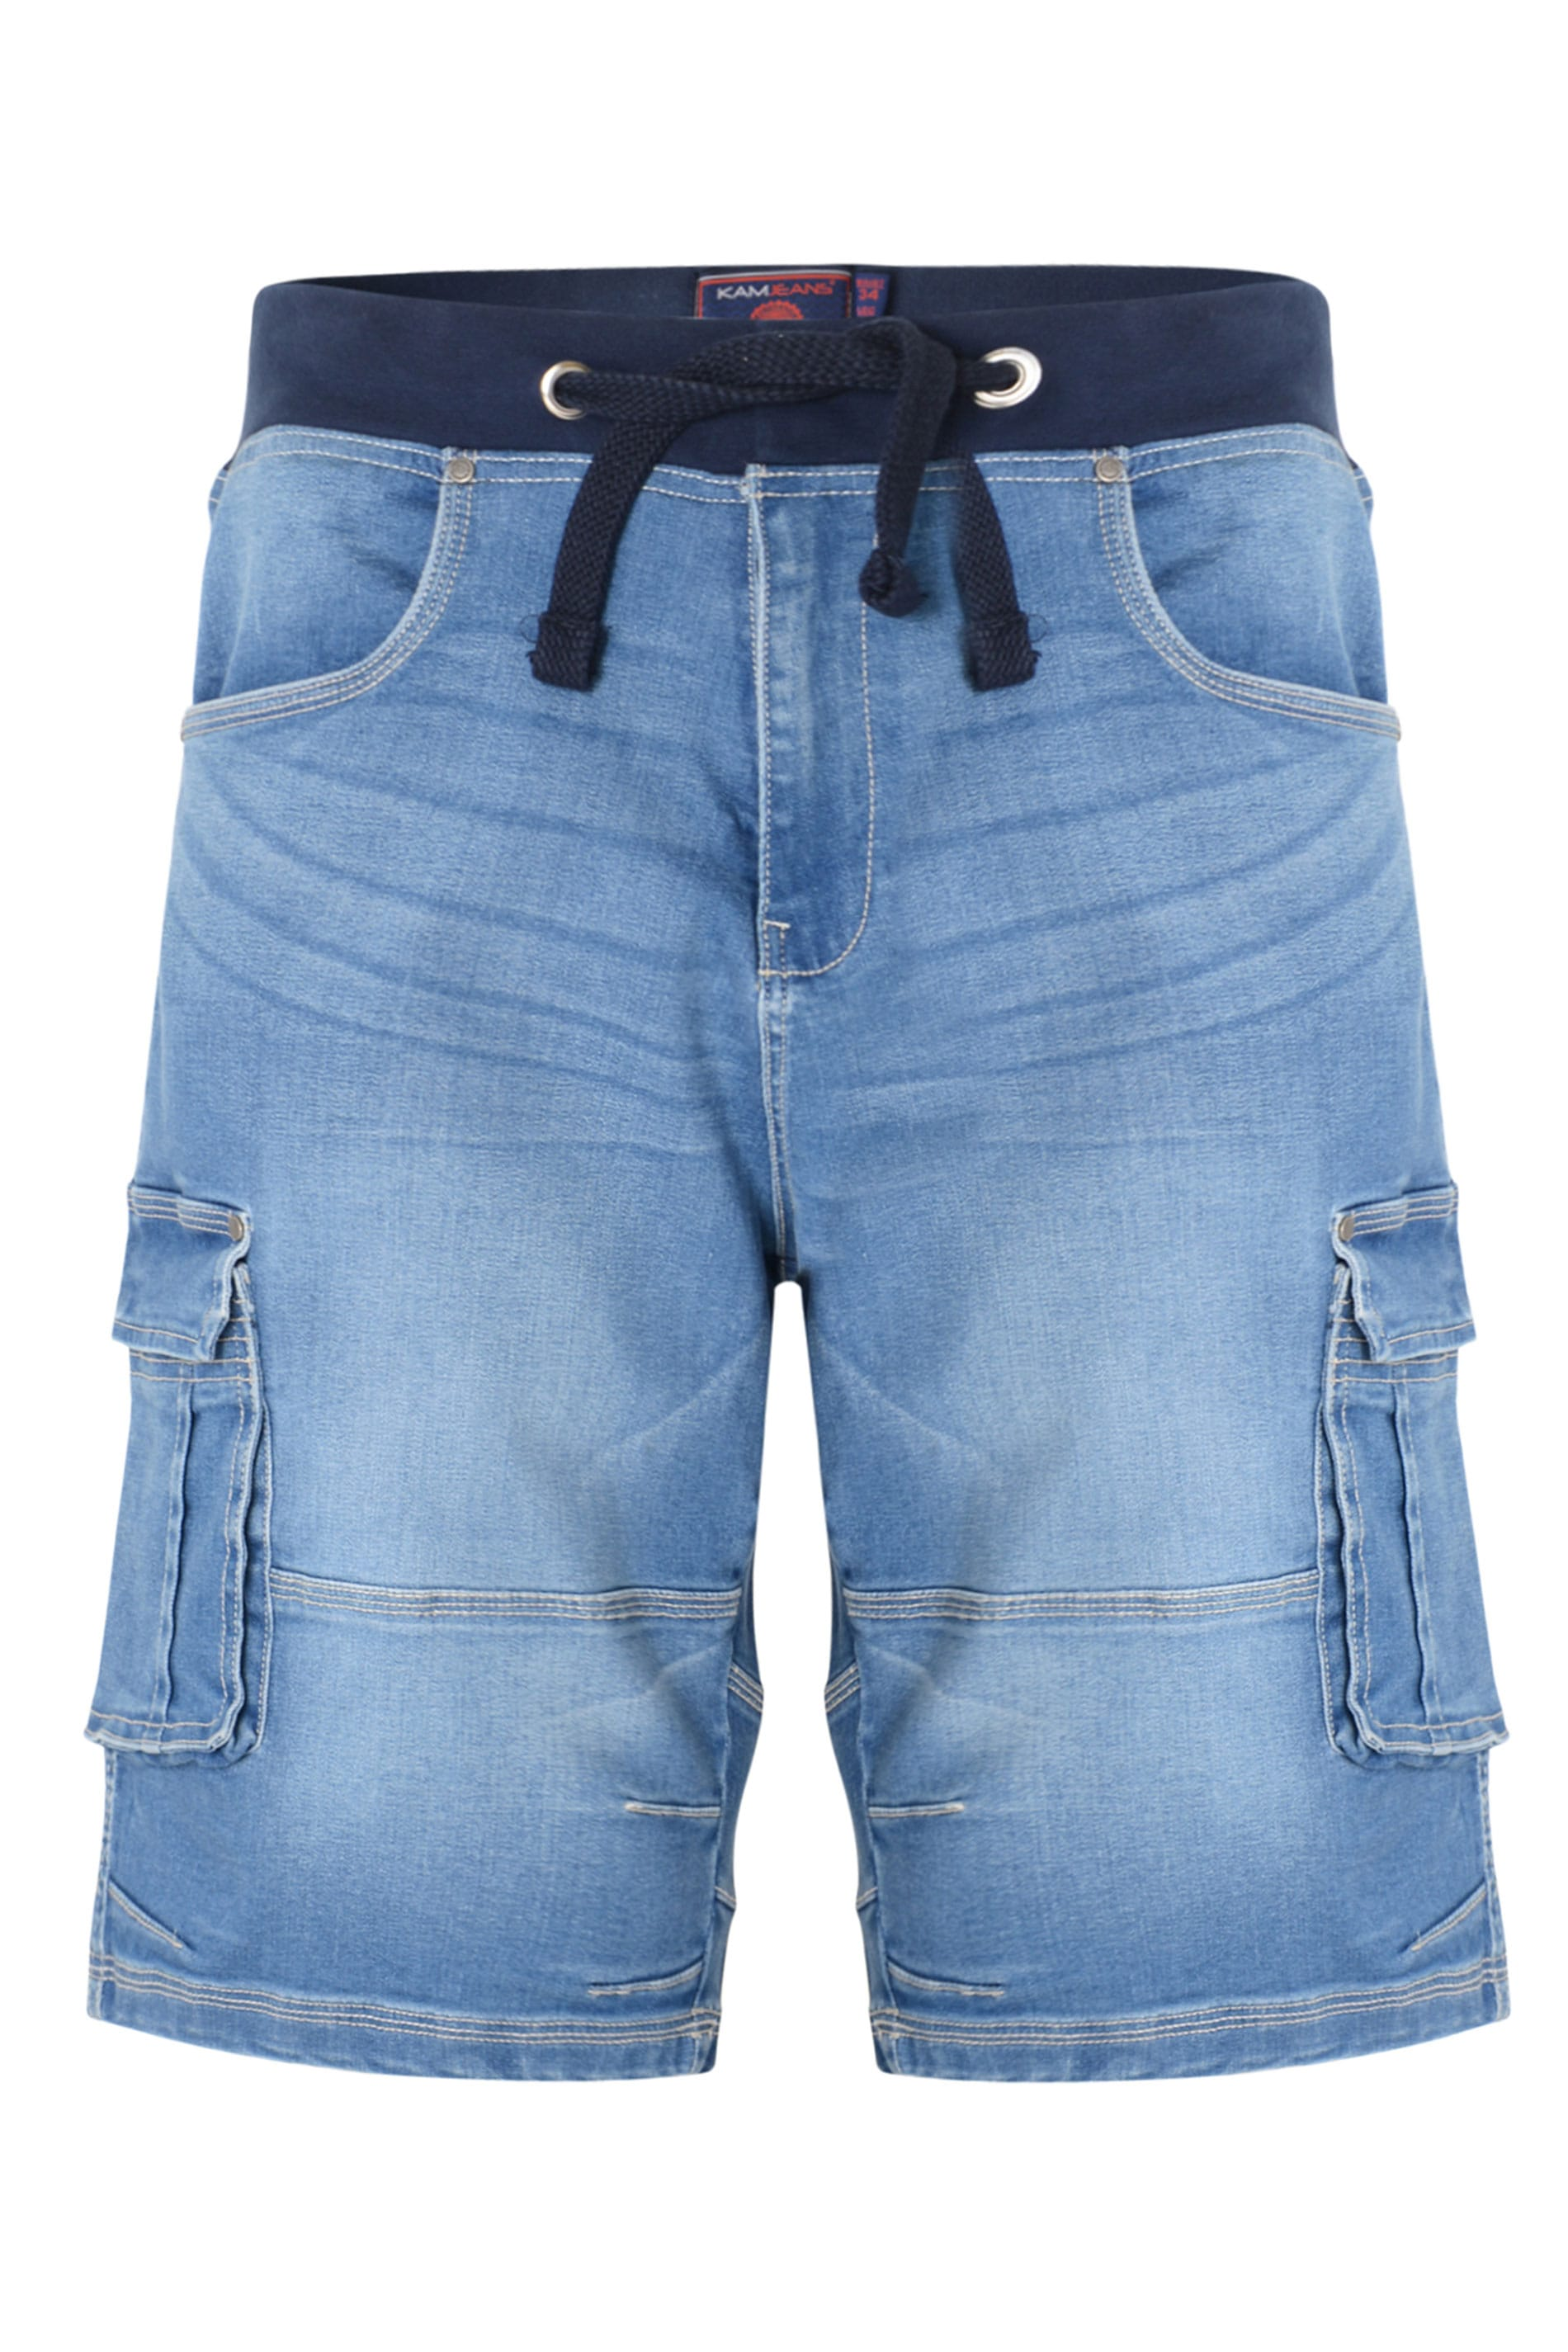 KAM Light Blue Denim Shorts